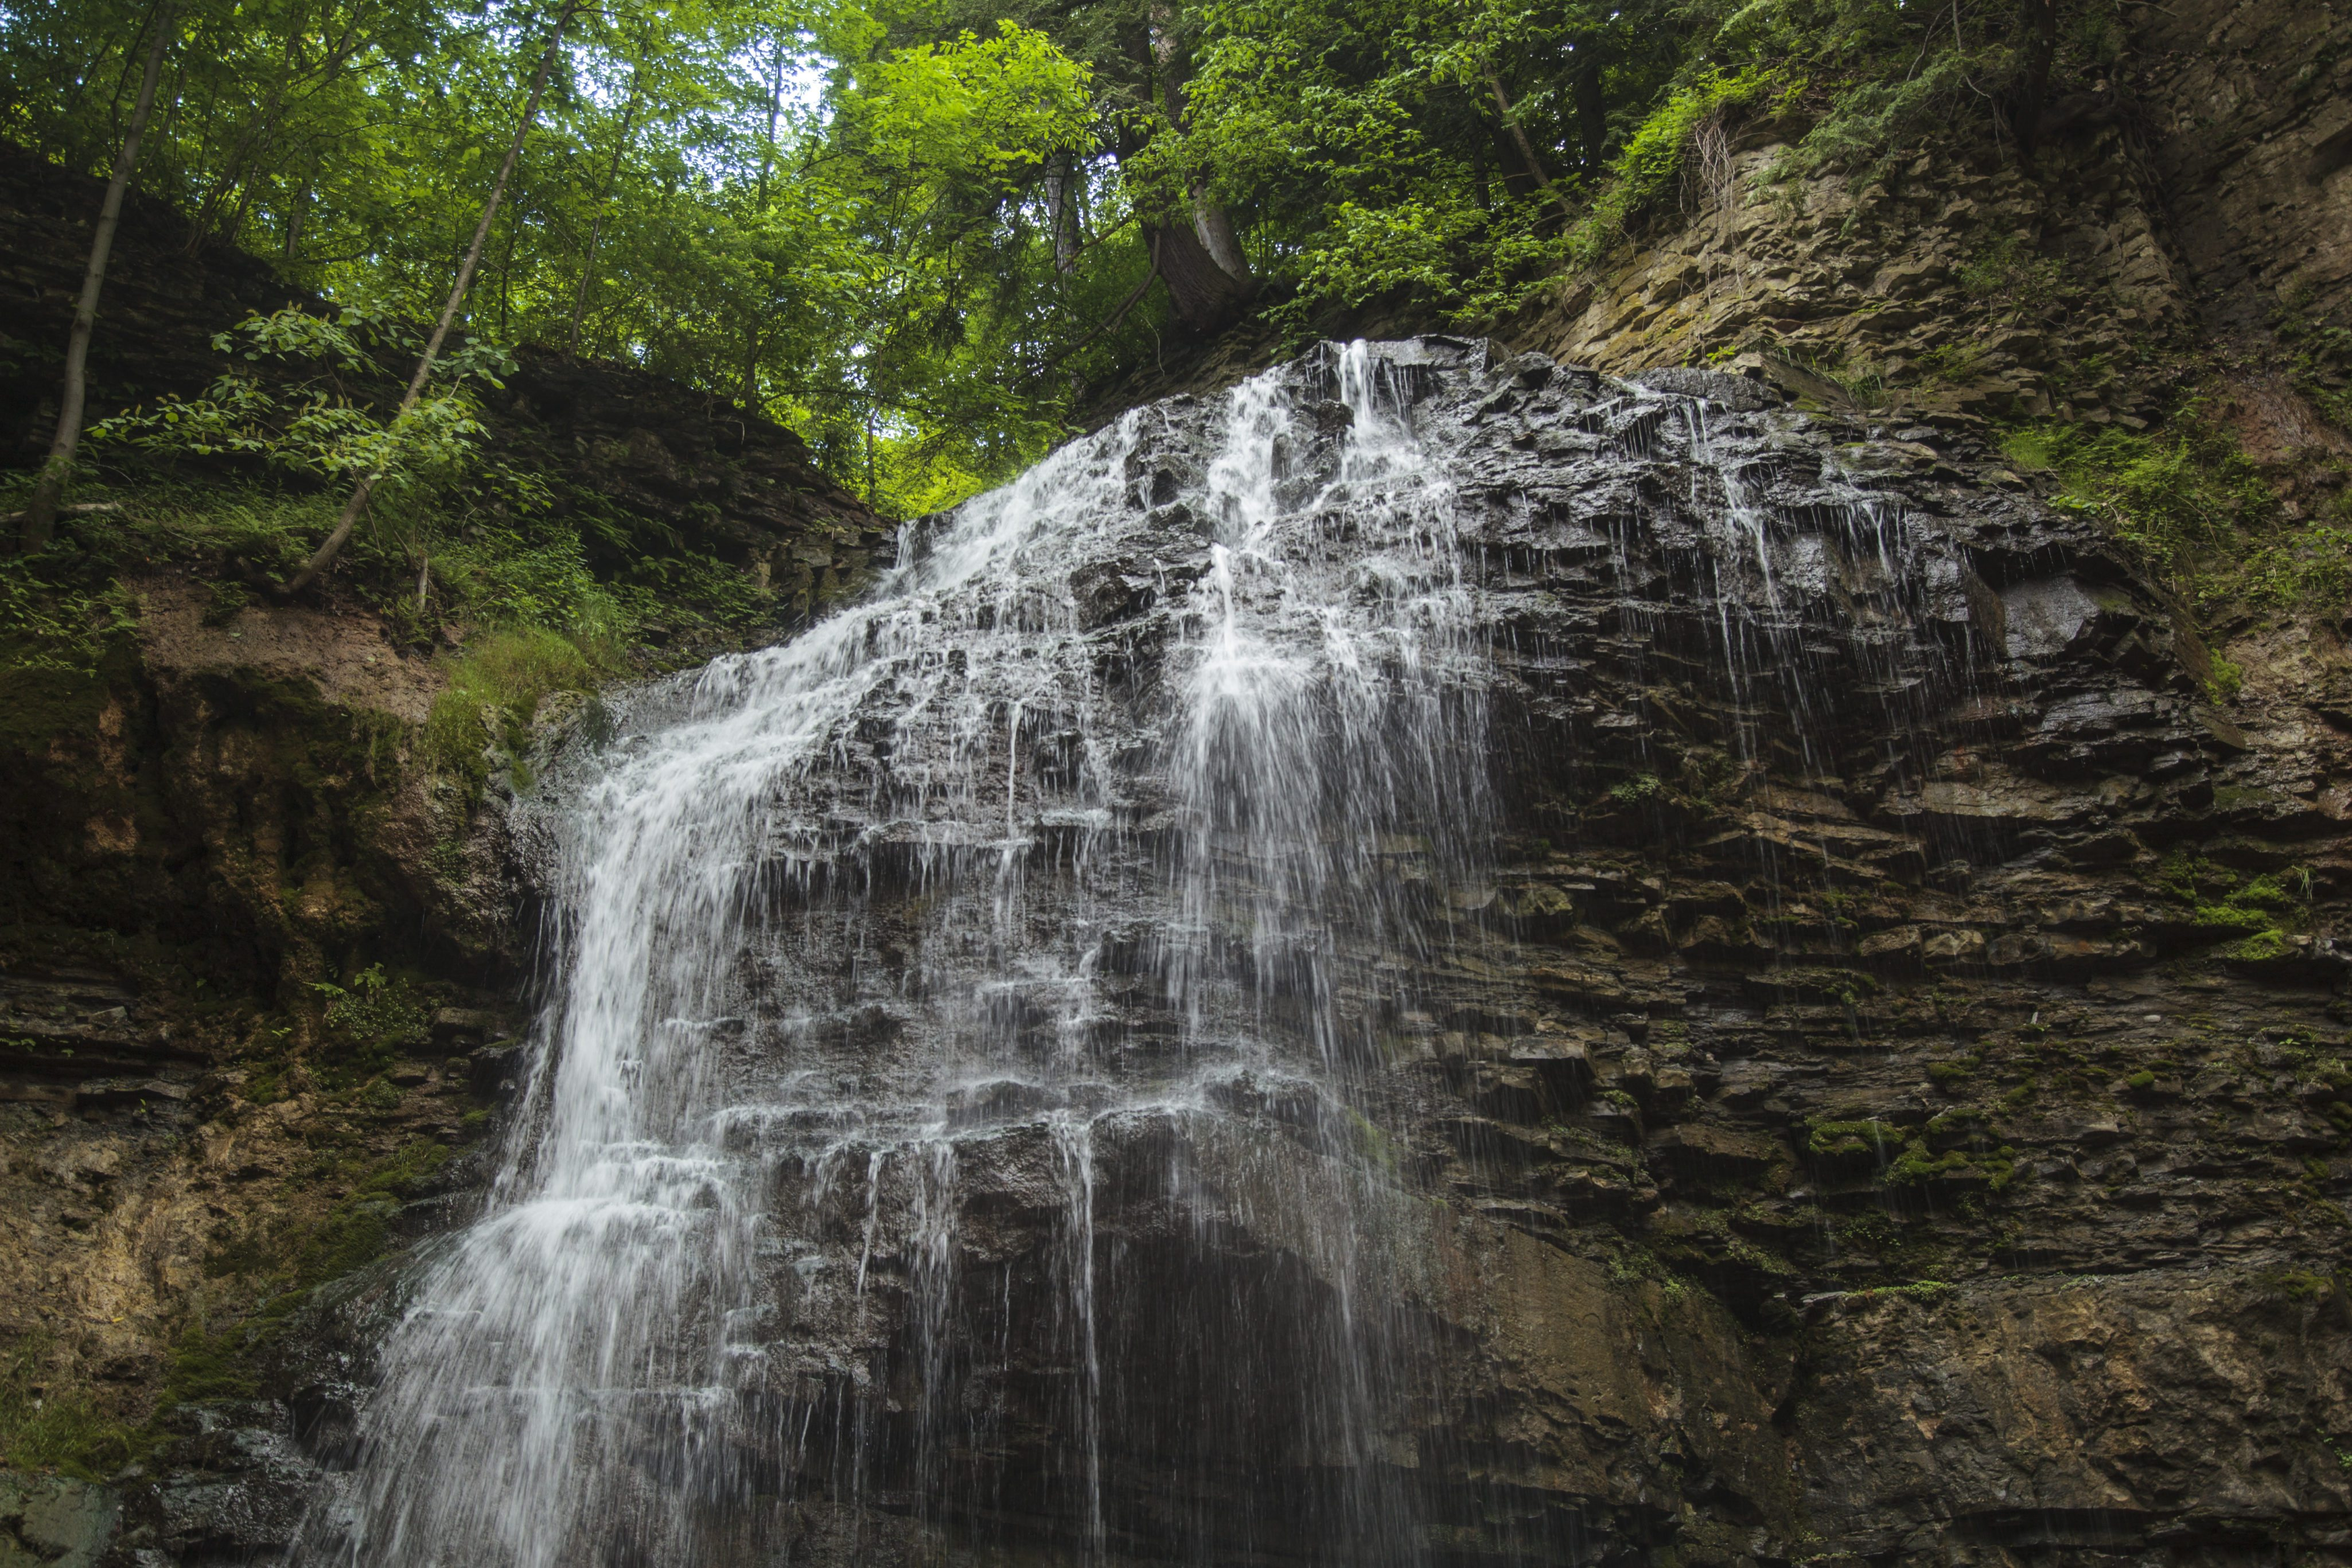 Tiffany Falls. Photo courtesy of the Friends of the Greenbelt Foundation.